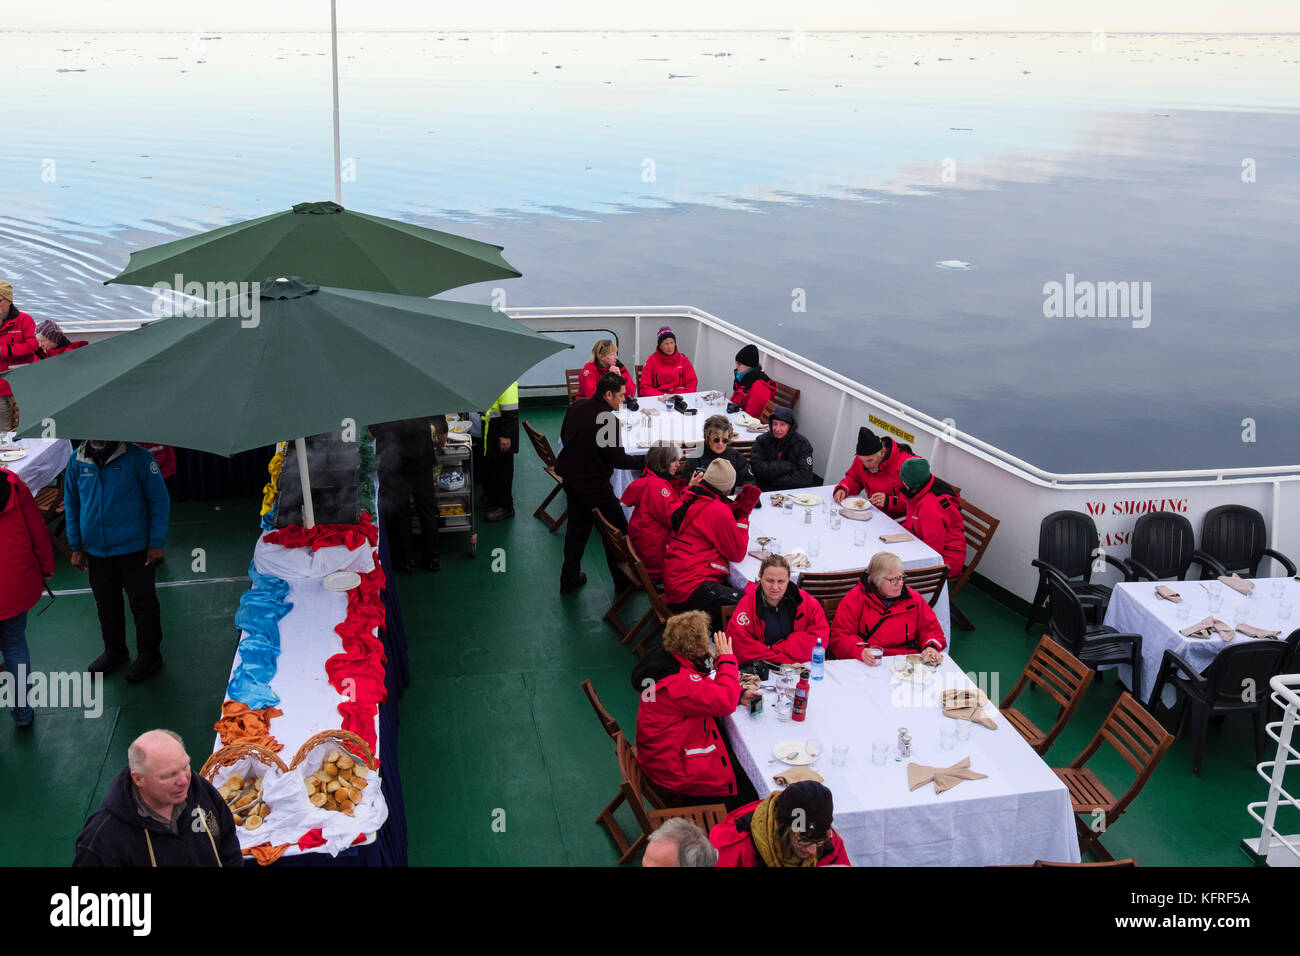 G Adventures cruise ship passengers eating outside on deck sailing through icy Arctic waters off Spitsbergen coast - Stock Image